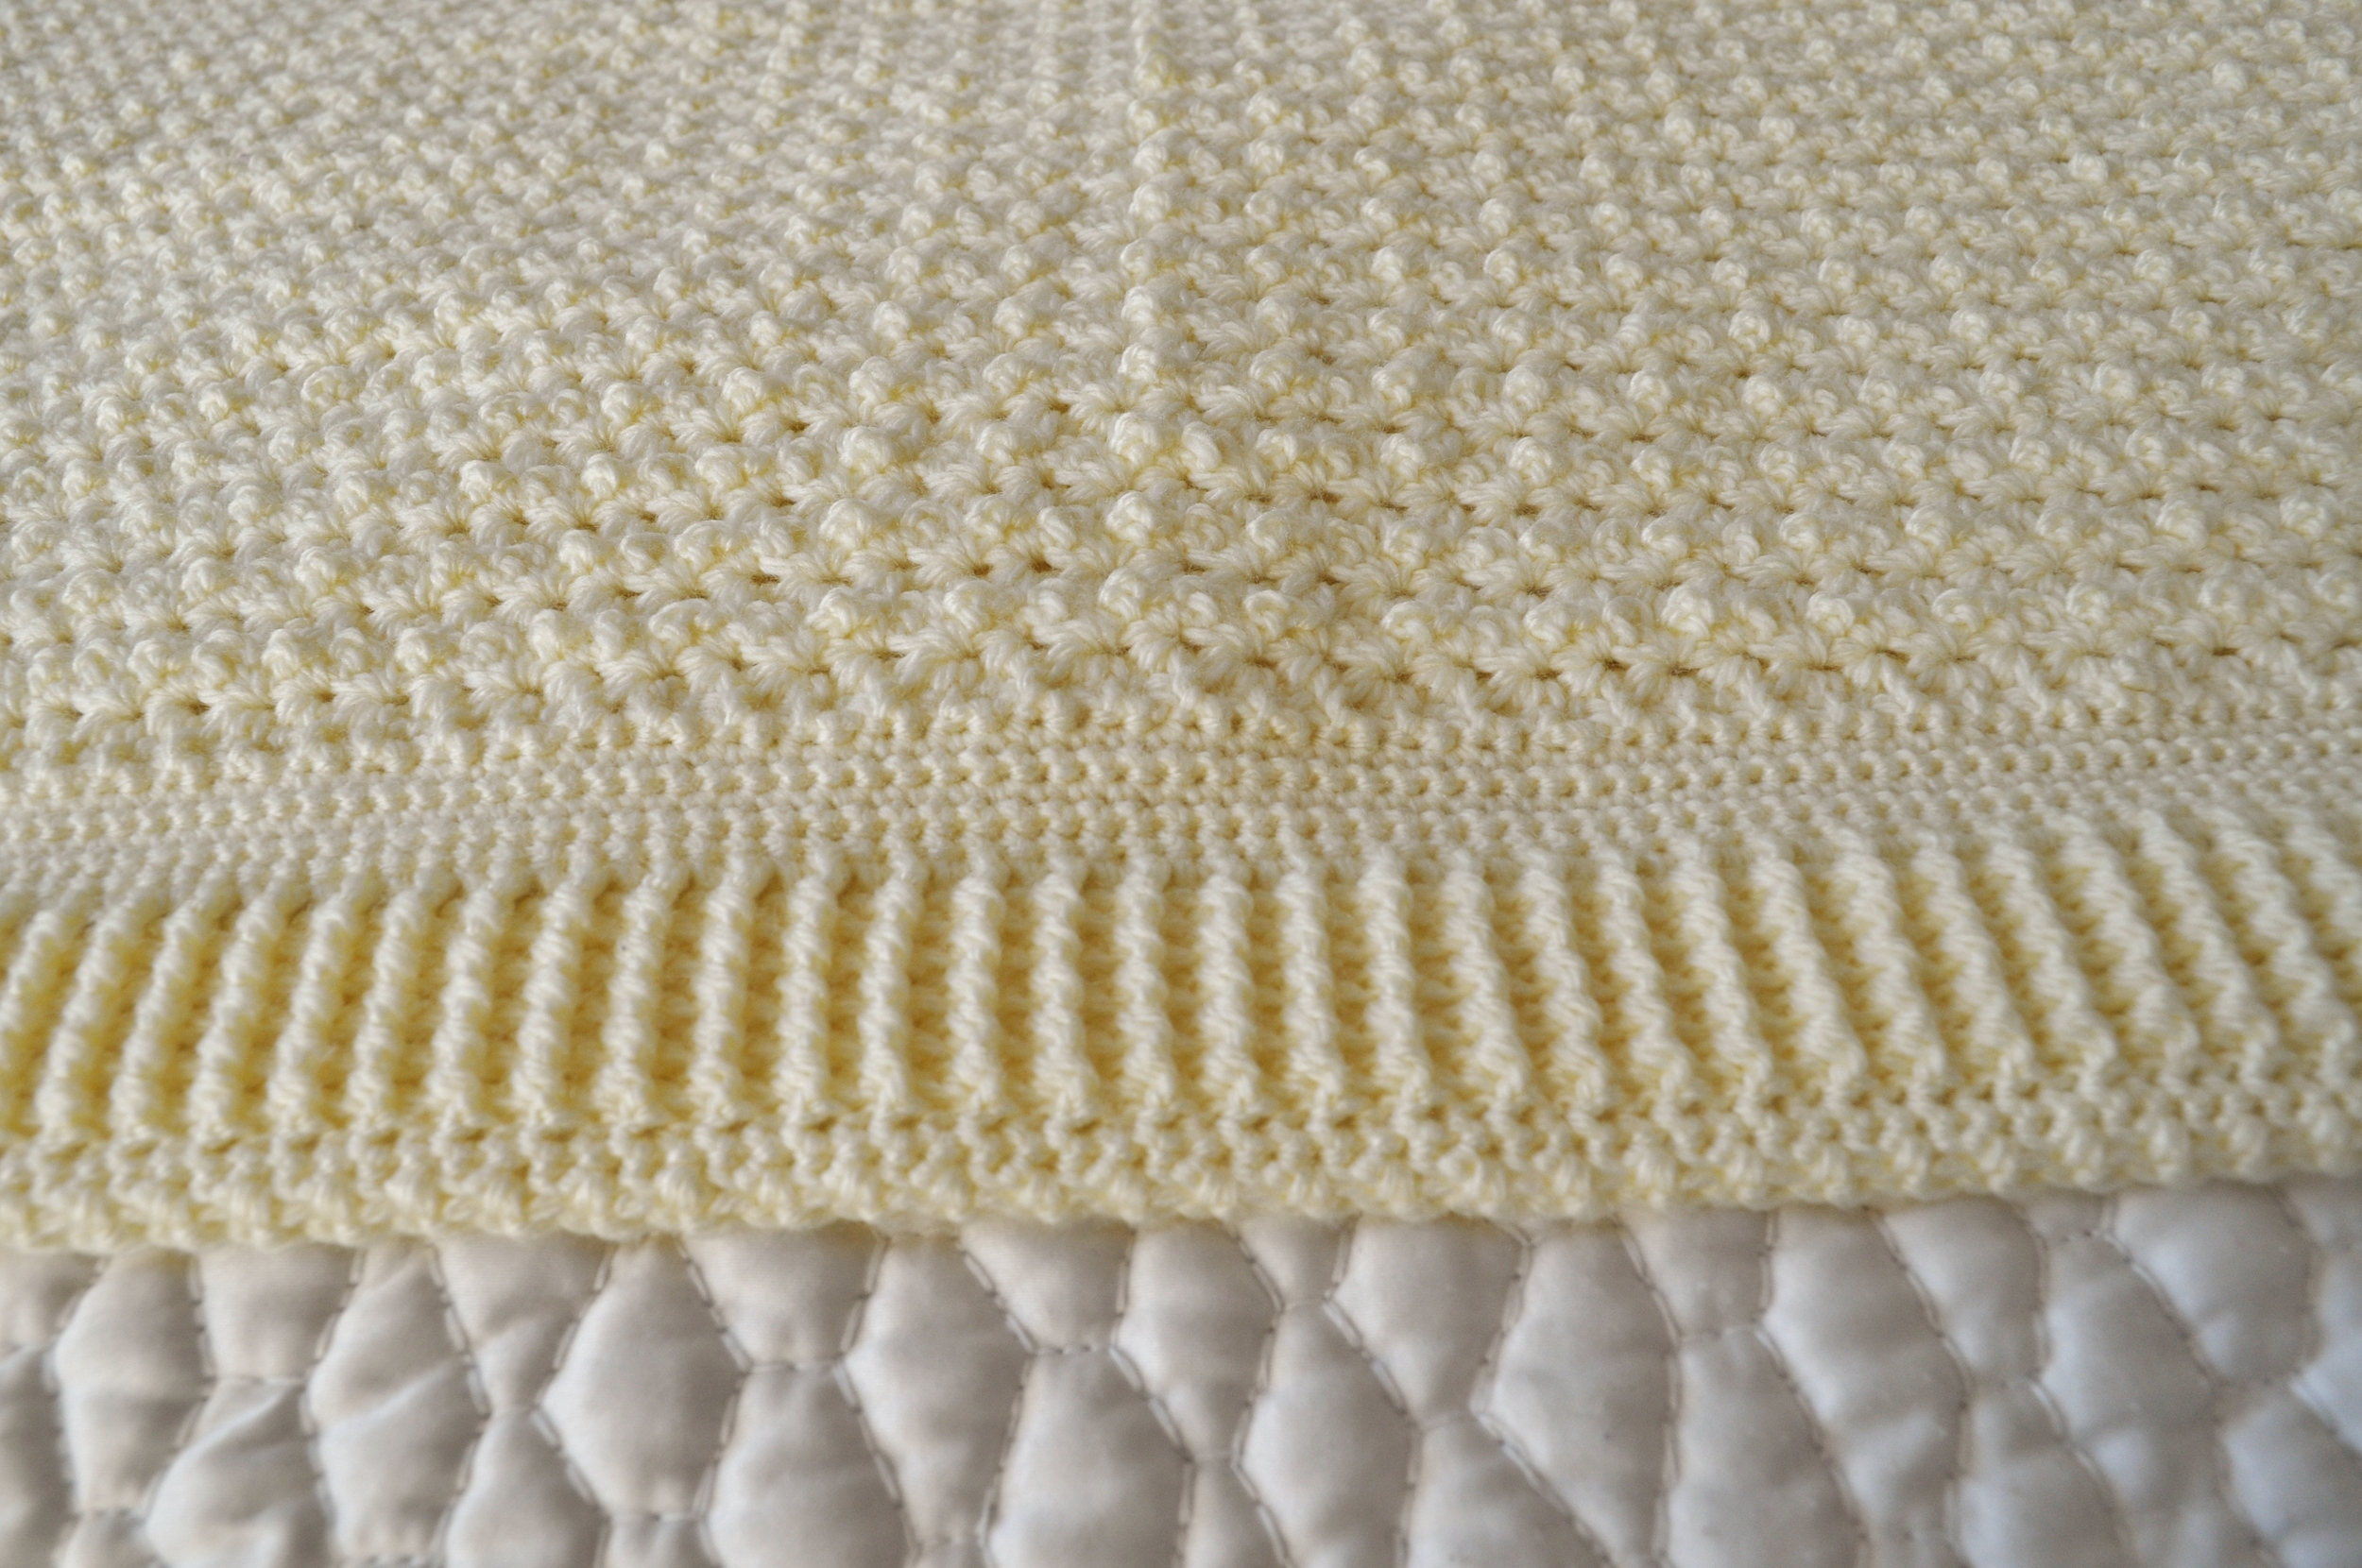 Crocheted Blanket Close up